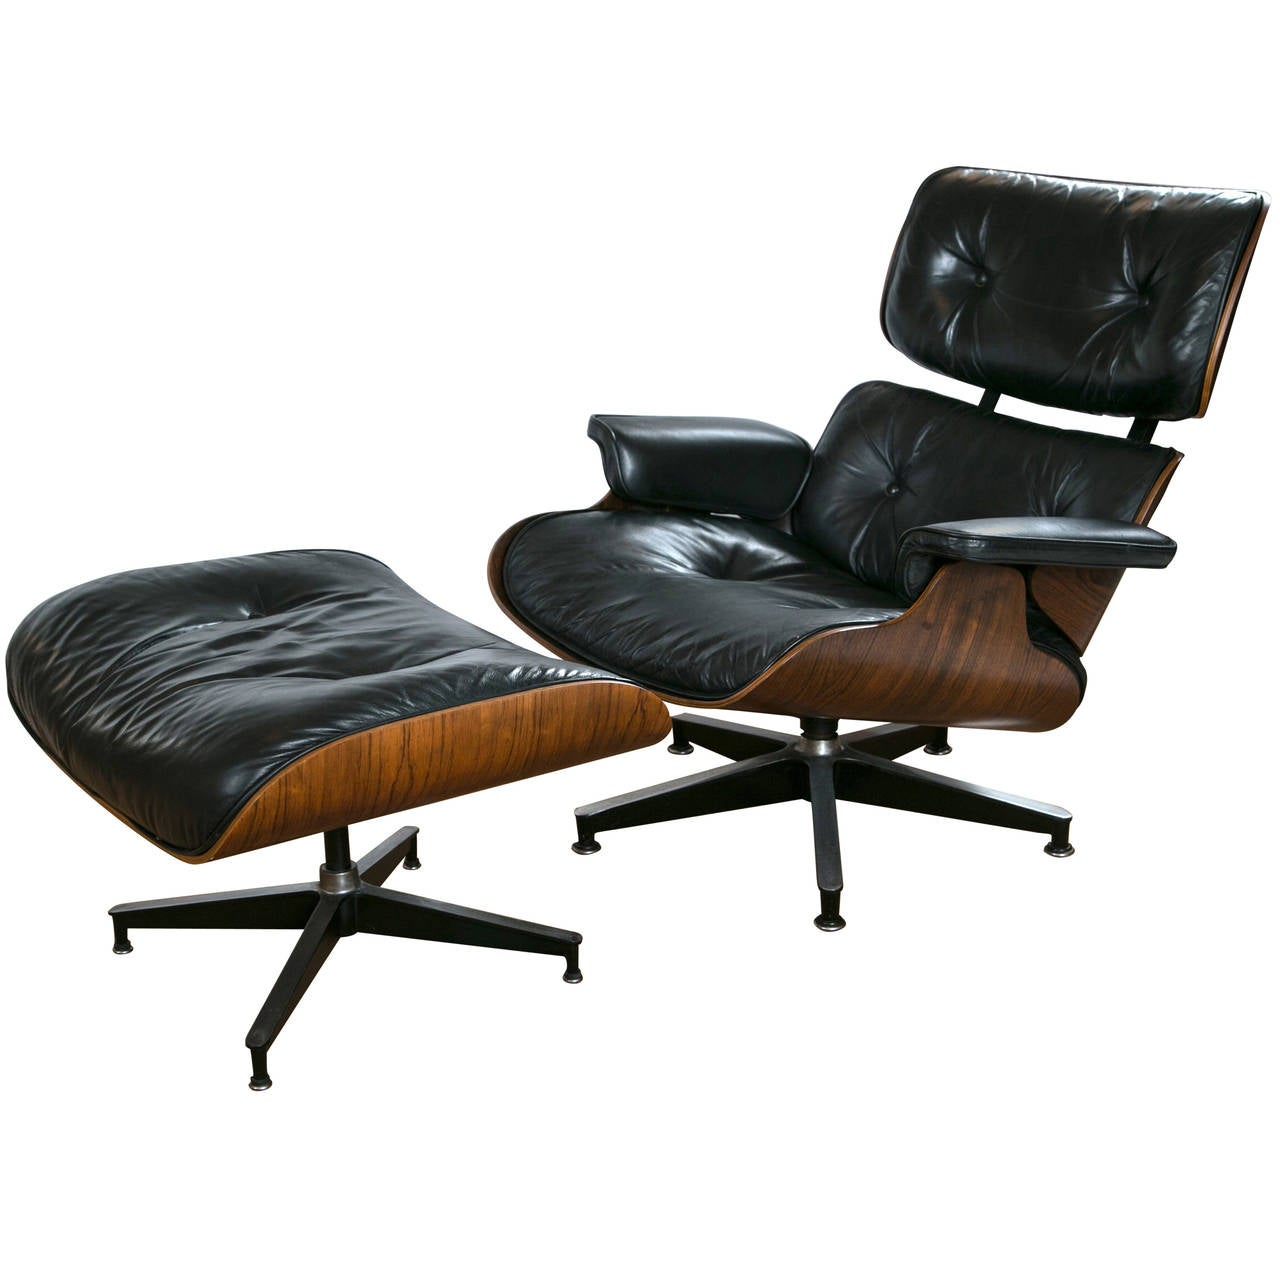 Eames Chairs Qld Vintage Eames Lounge Chair And Ottoman At 1stdibs